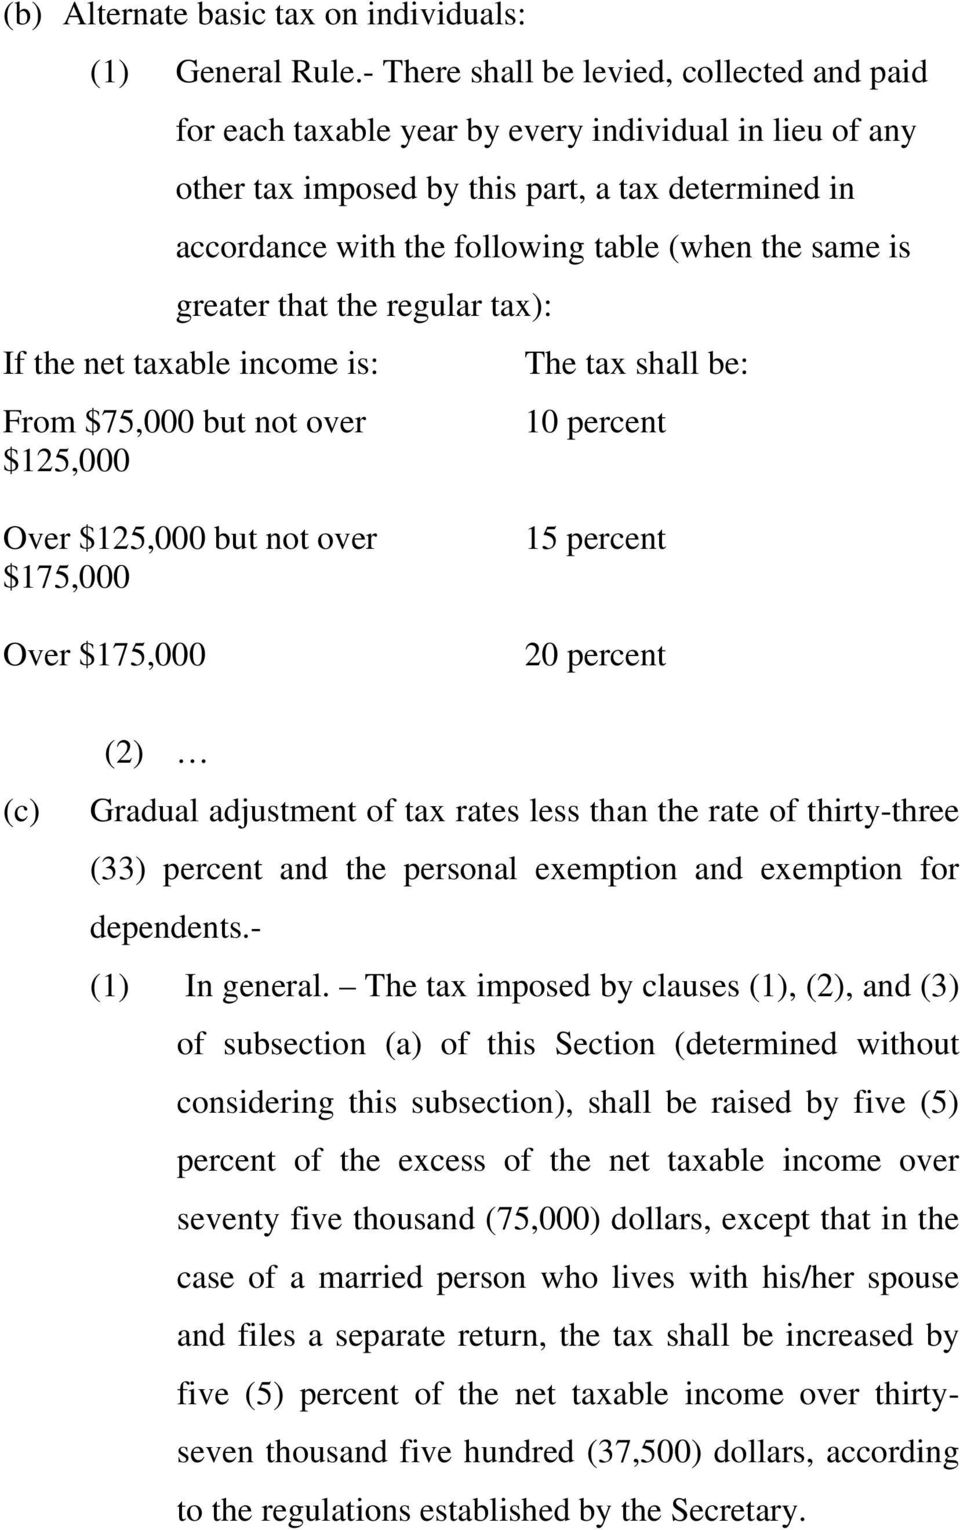 same is greater that the regular tax): If the net taxable income is: The tax shall be: From $75,000 but not over 10 percent $125,000 Over $125,000 but not over $175,000 Over $175,000 15 percent 20